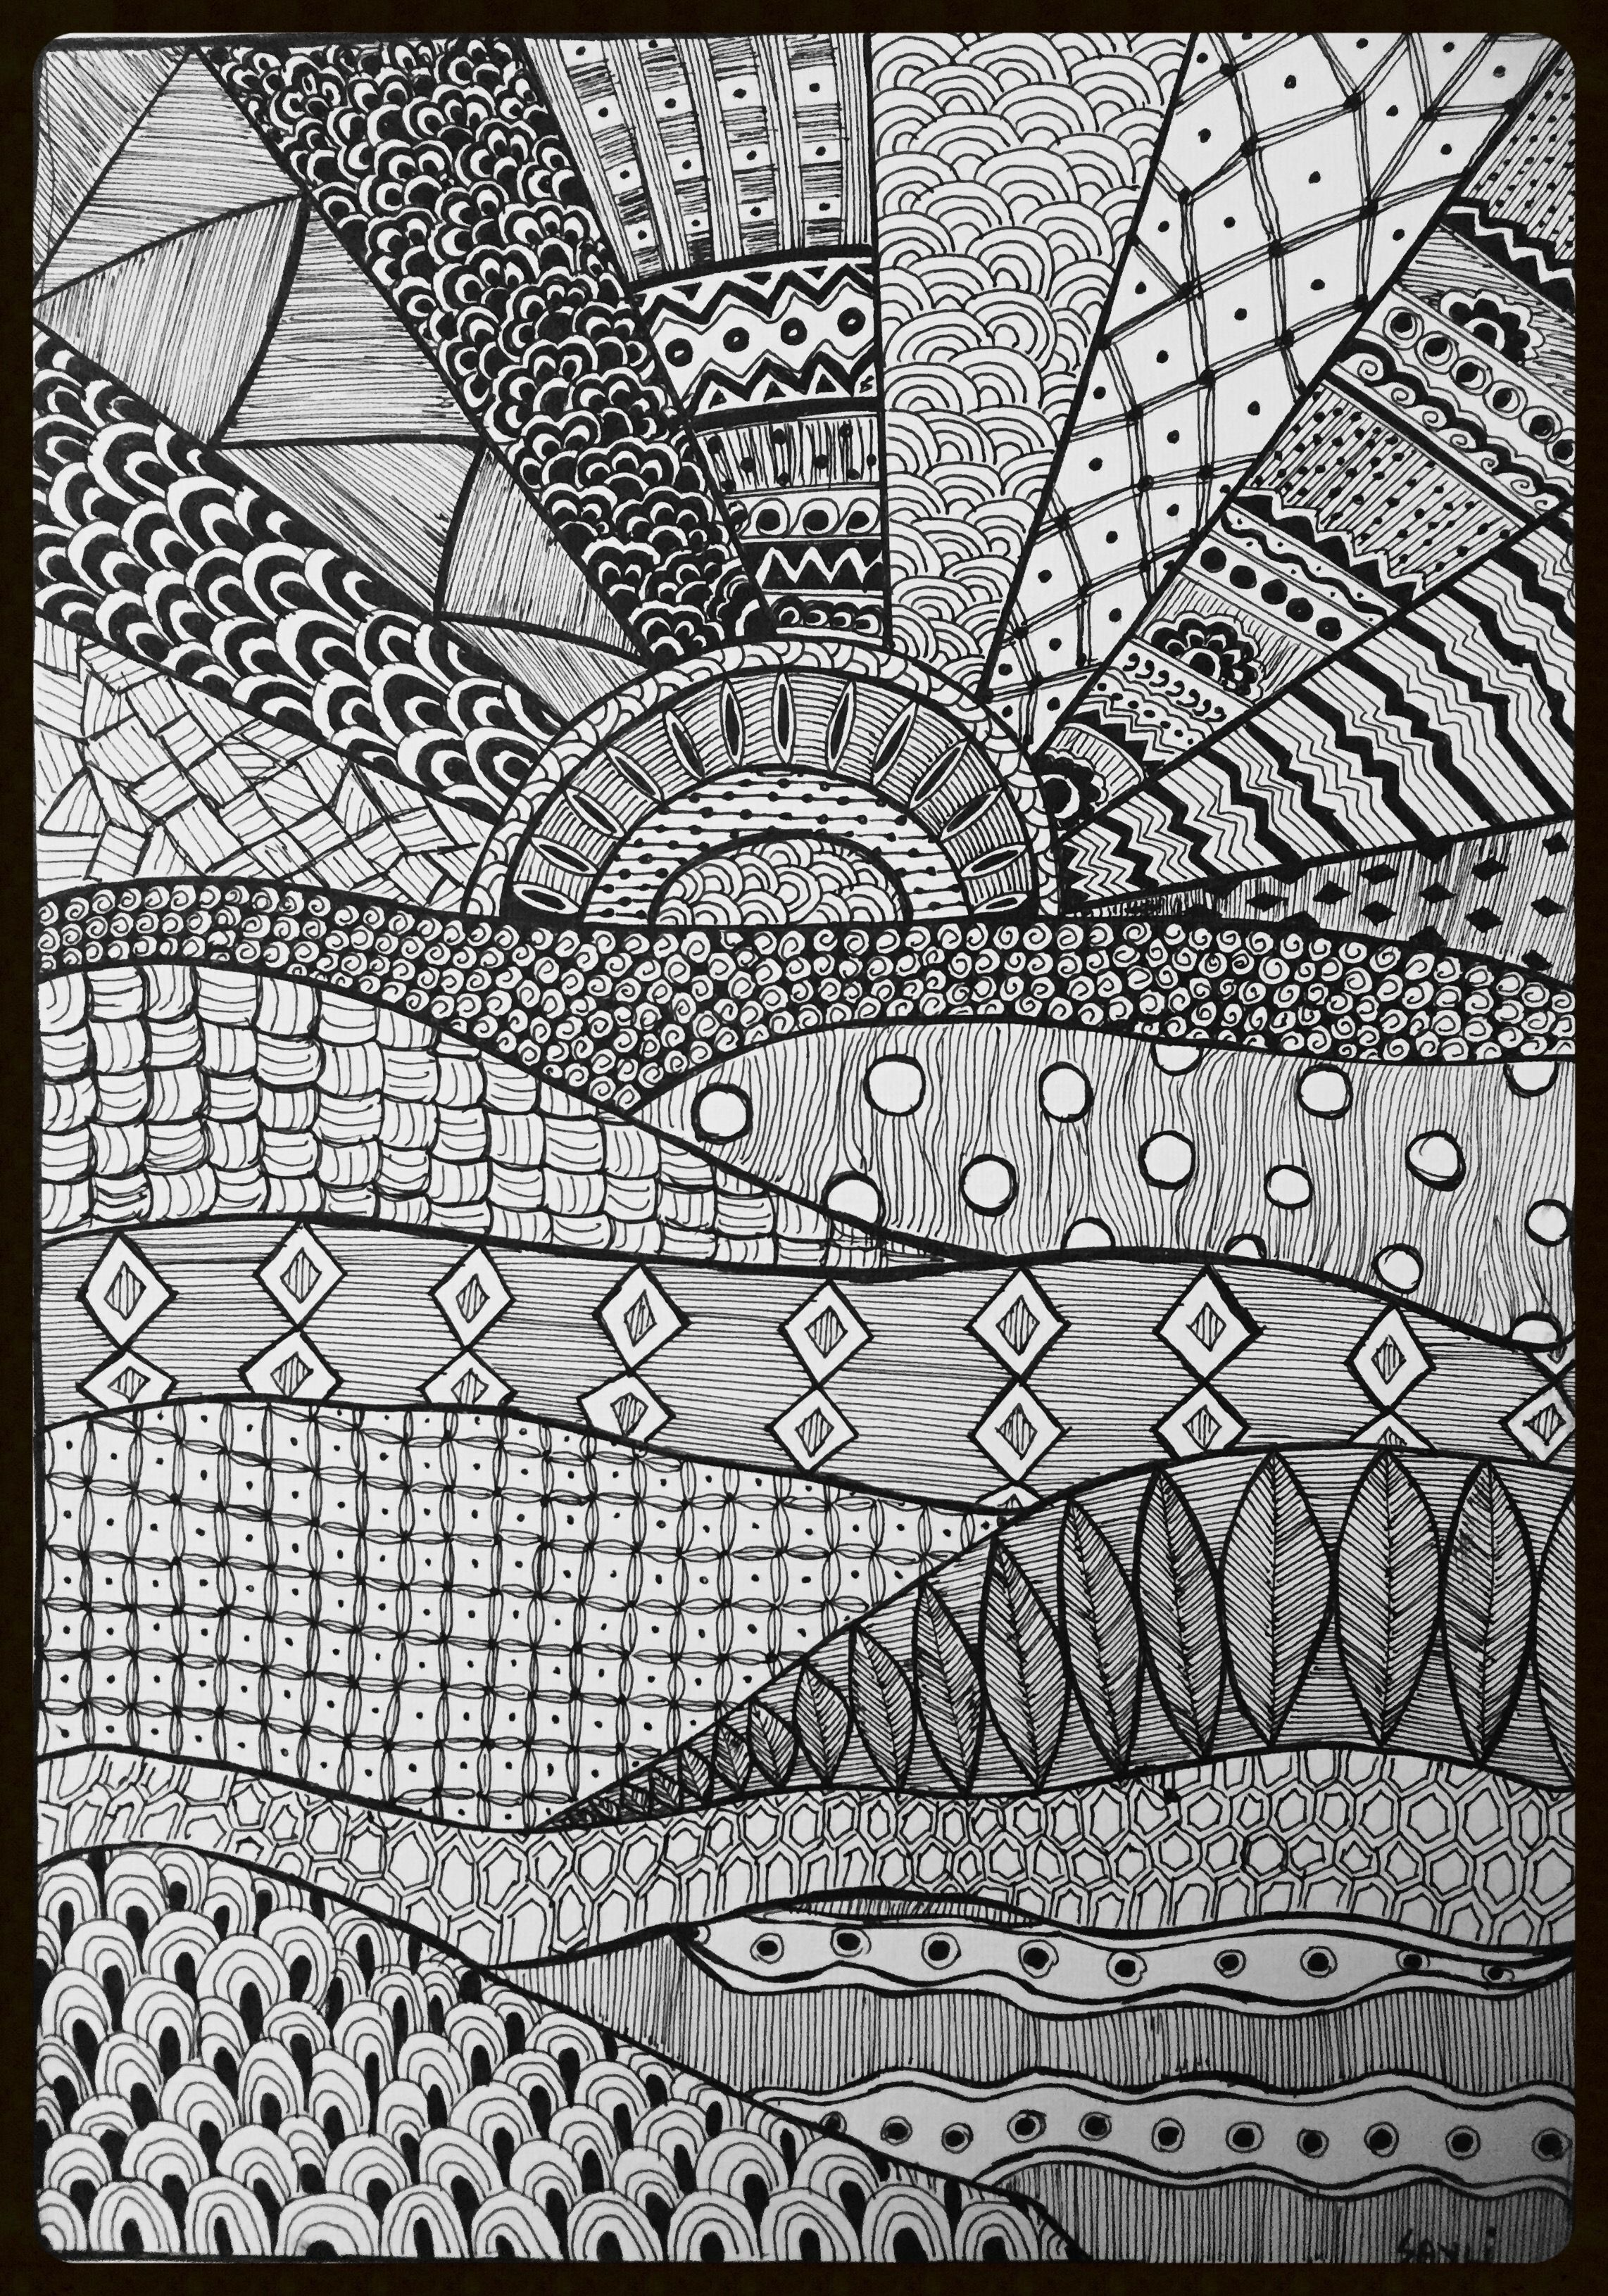 Pin By Sayli Panse On My Creations Doodle Art Doodle Art